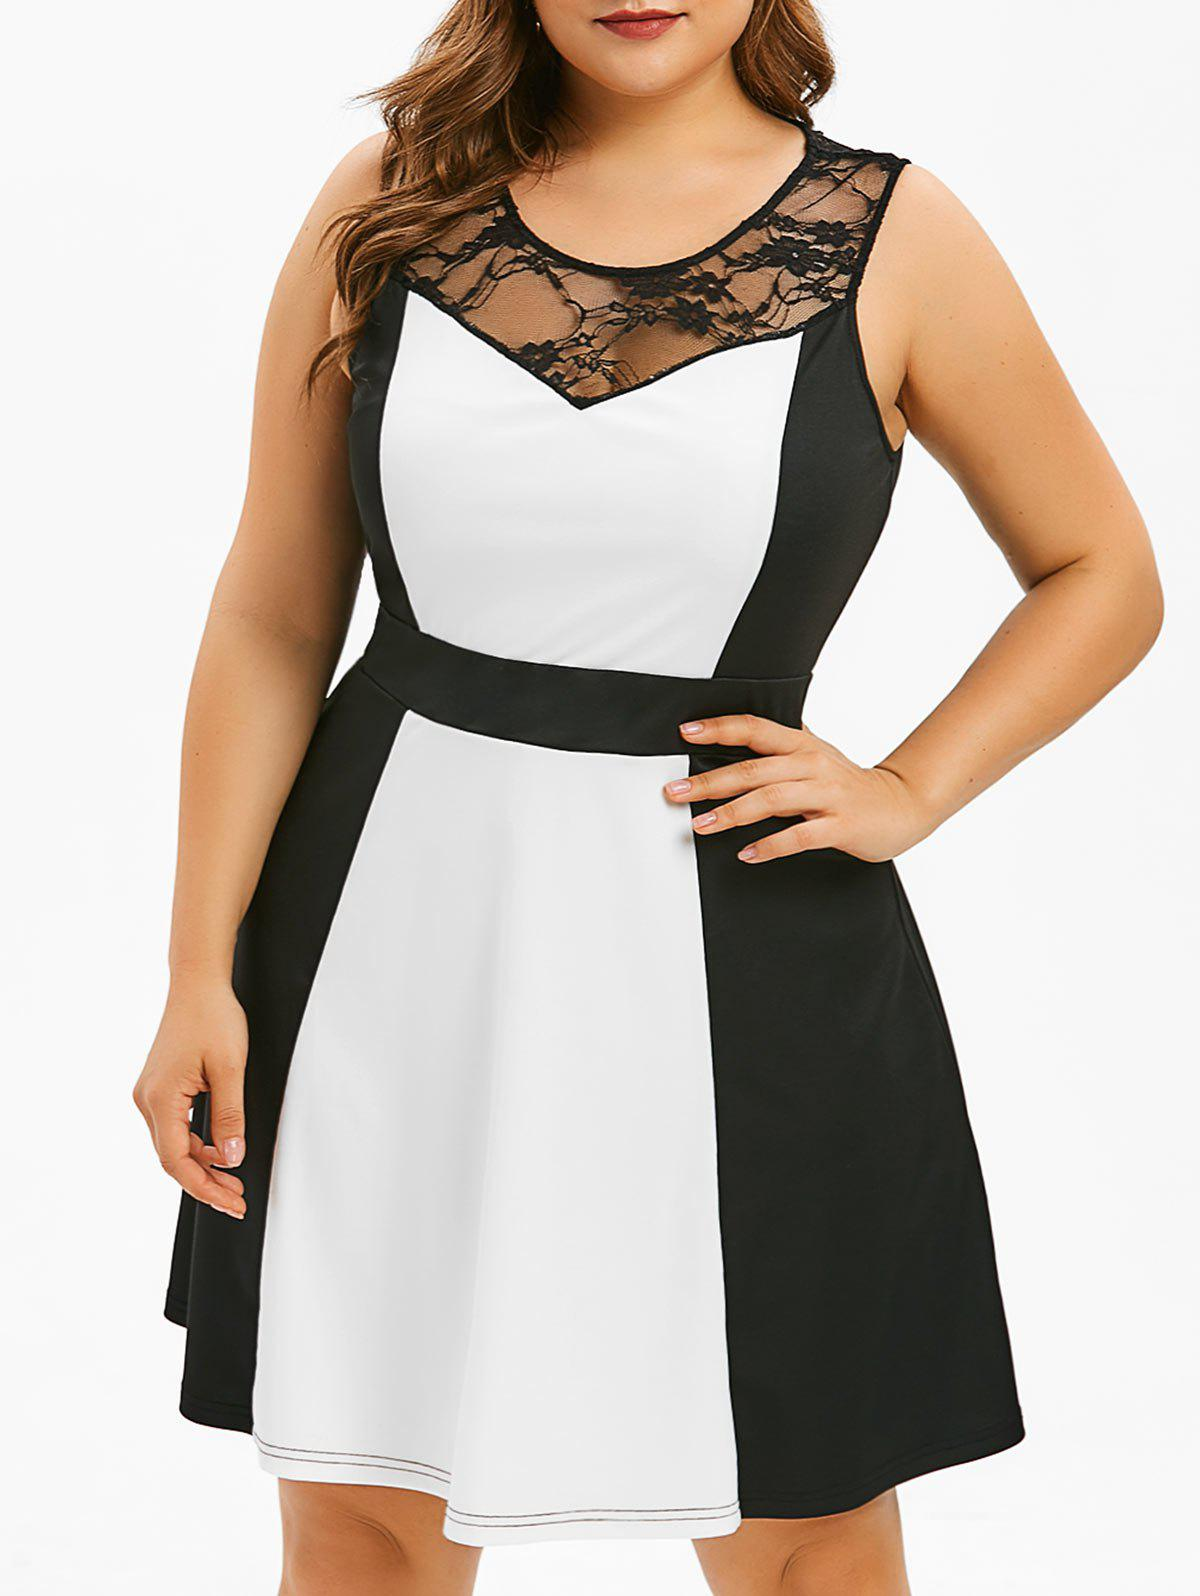 Chic Plus Size Lace Panel Two Tone Dress